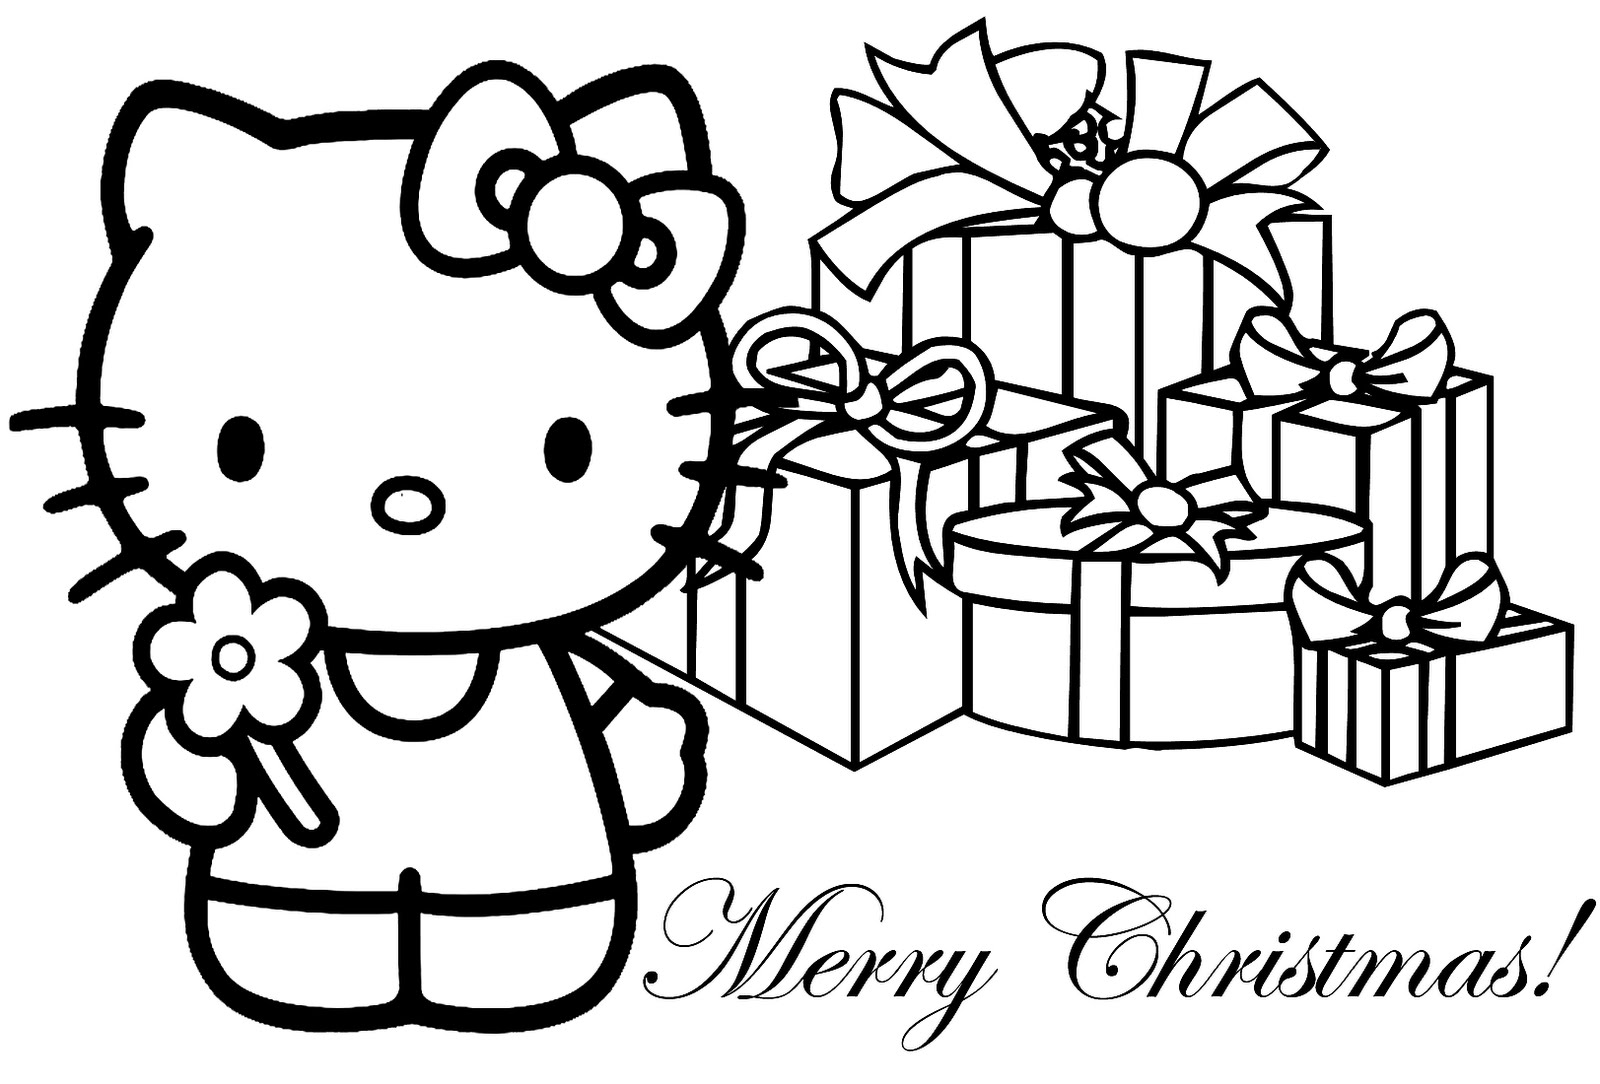 Christmas Colouring Pages To Print For Free With Printable Merry Coloring